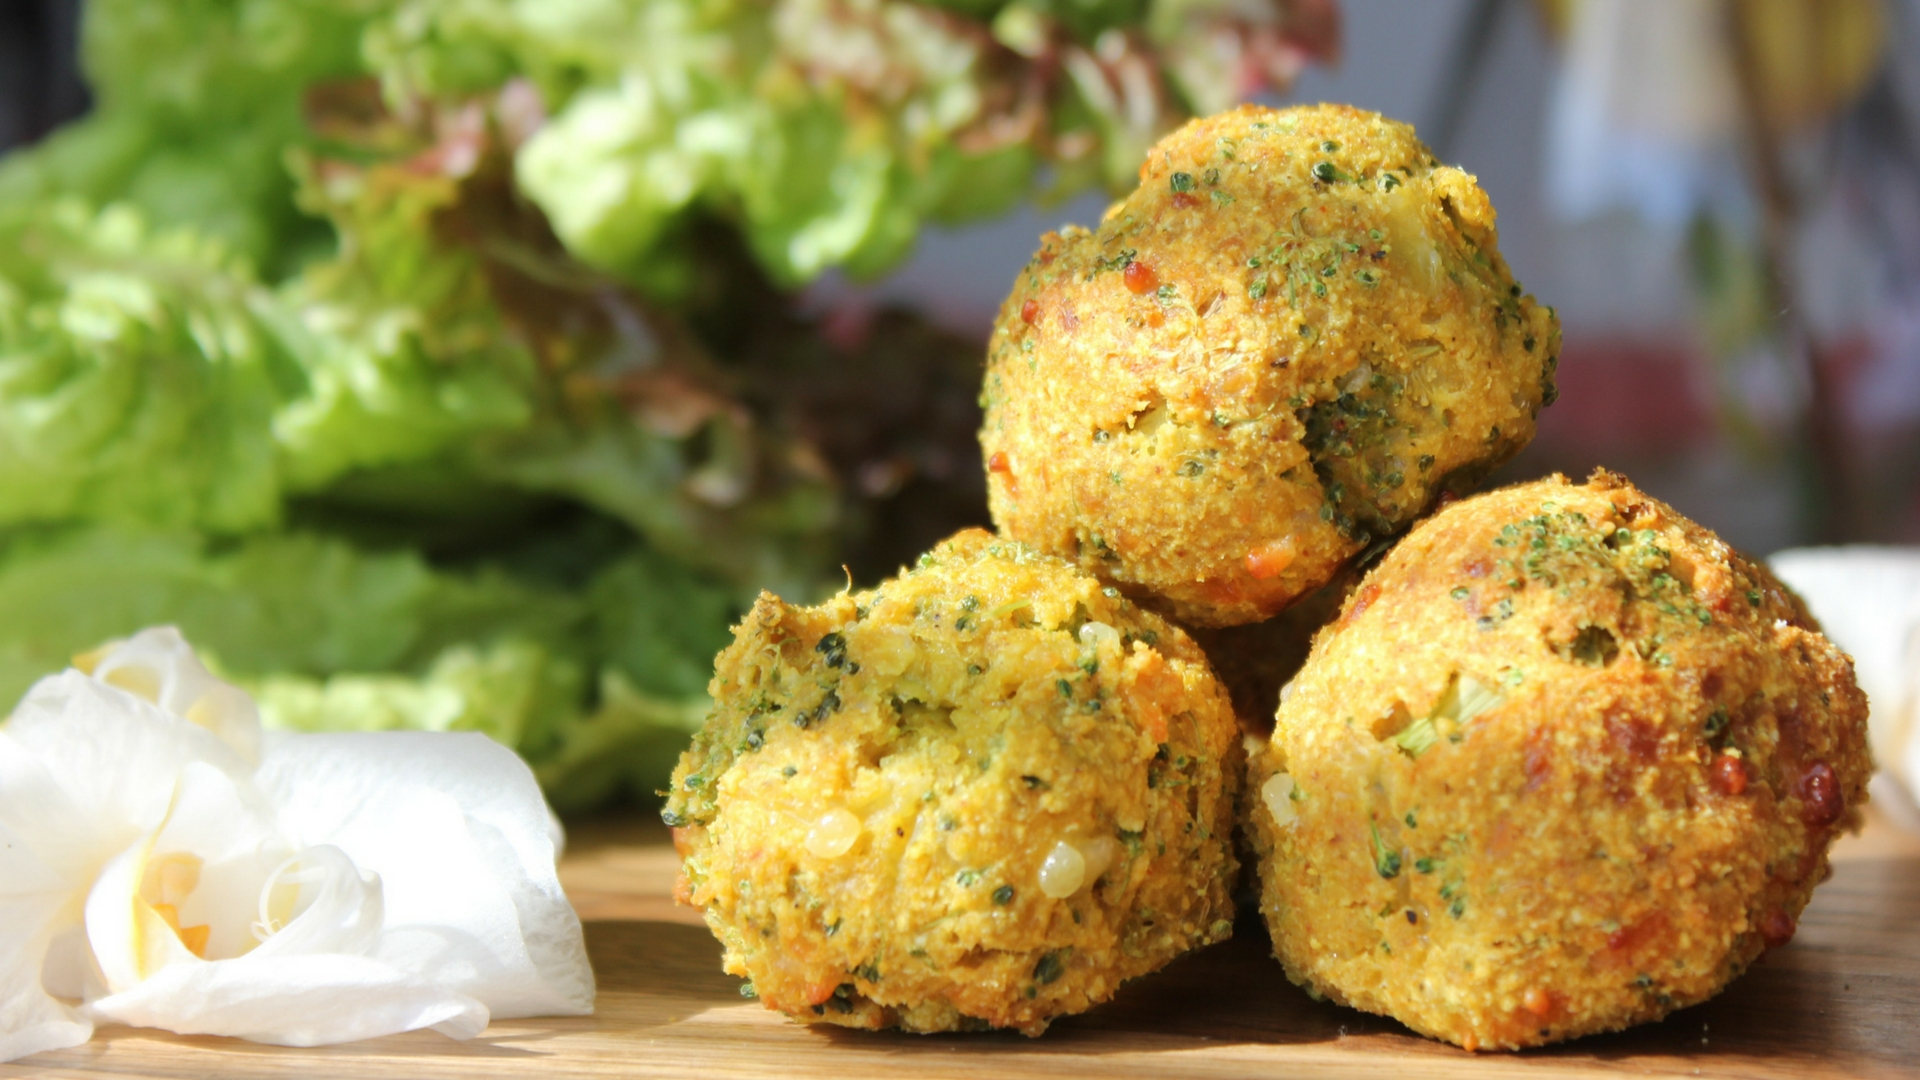 Broccoli and mozzarella bites